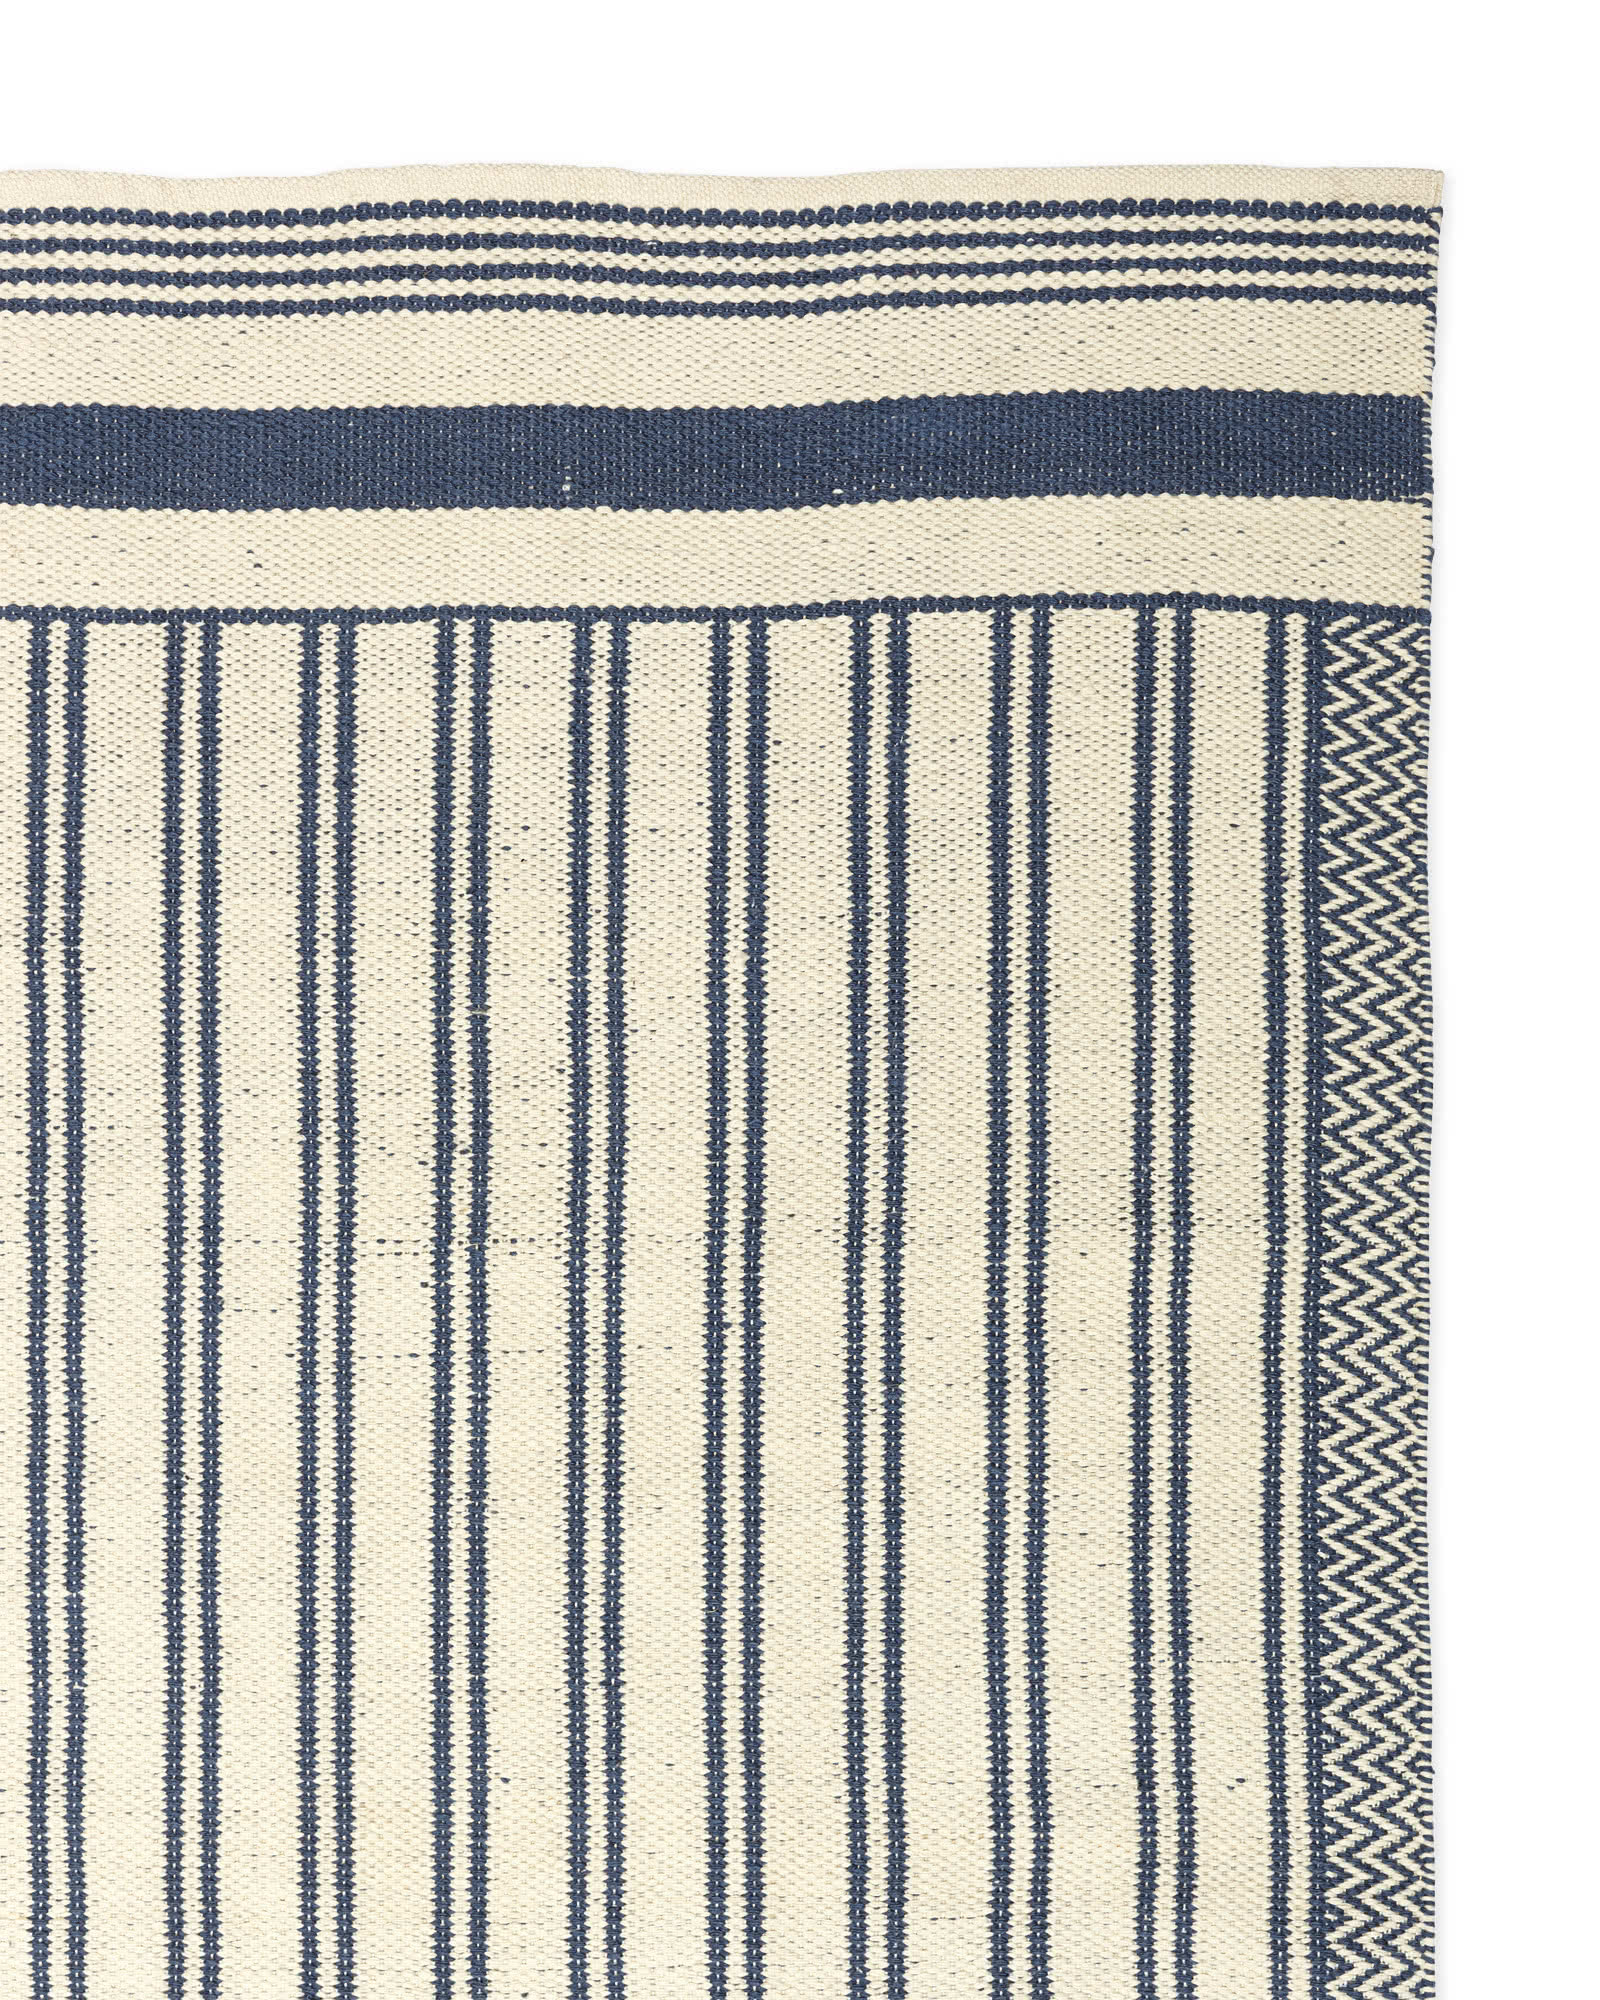 Athens Outdoor Rug,